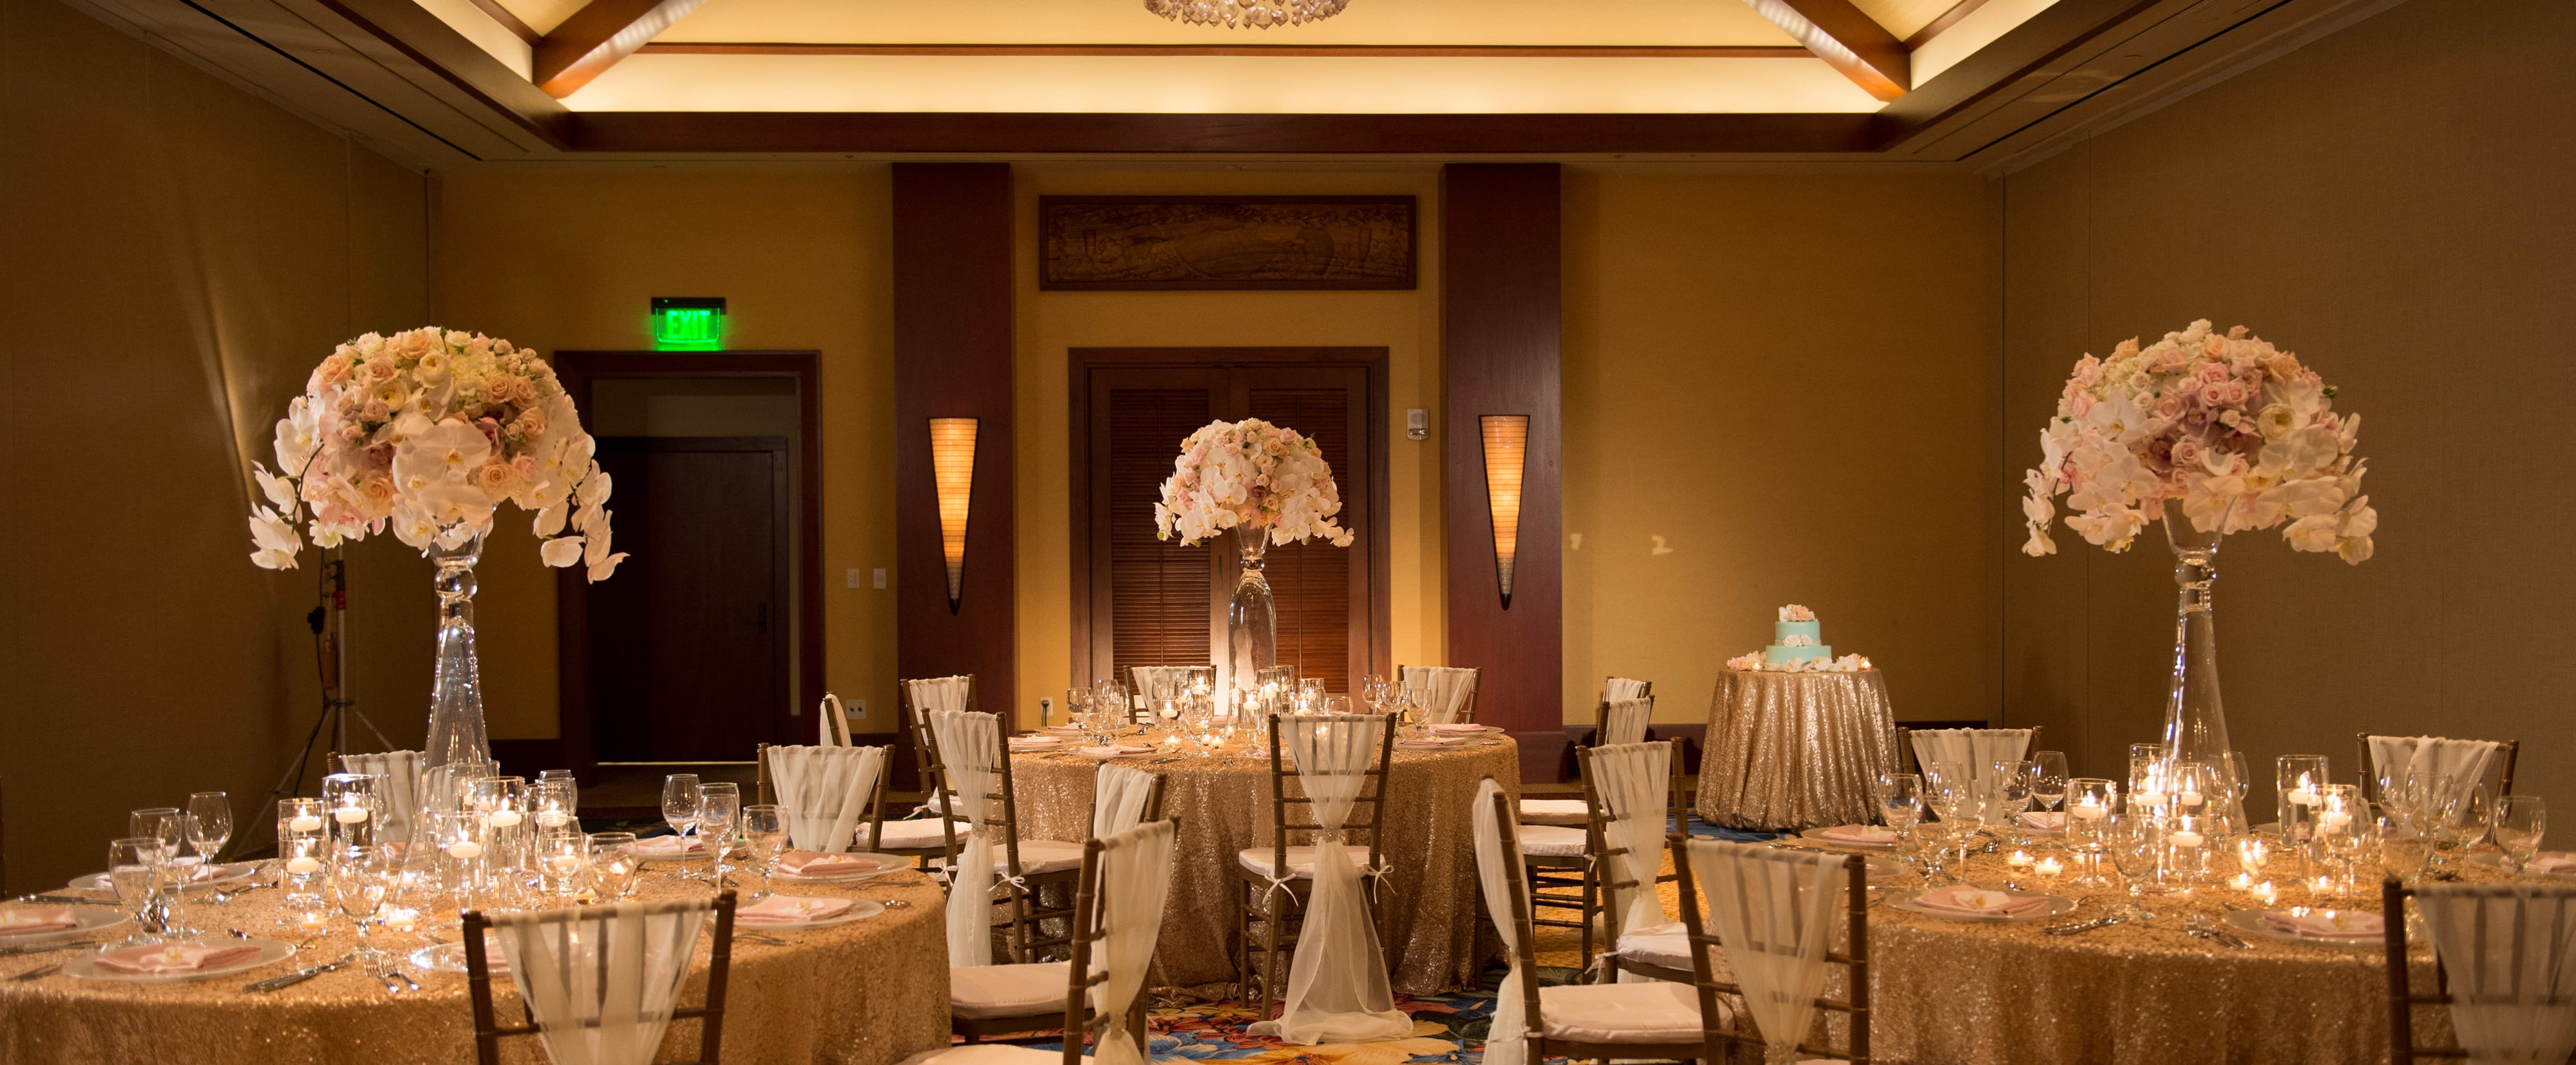 Weddings Special Events Aulani Hawaii Resort Spa